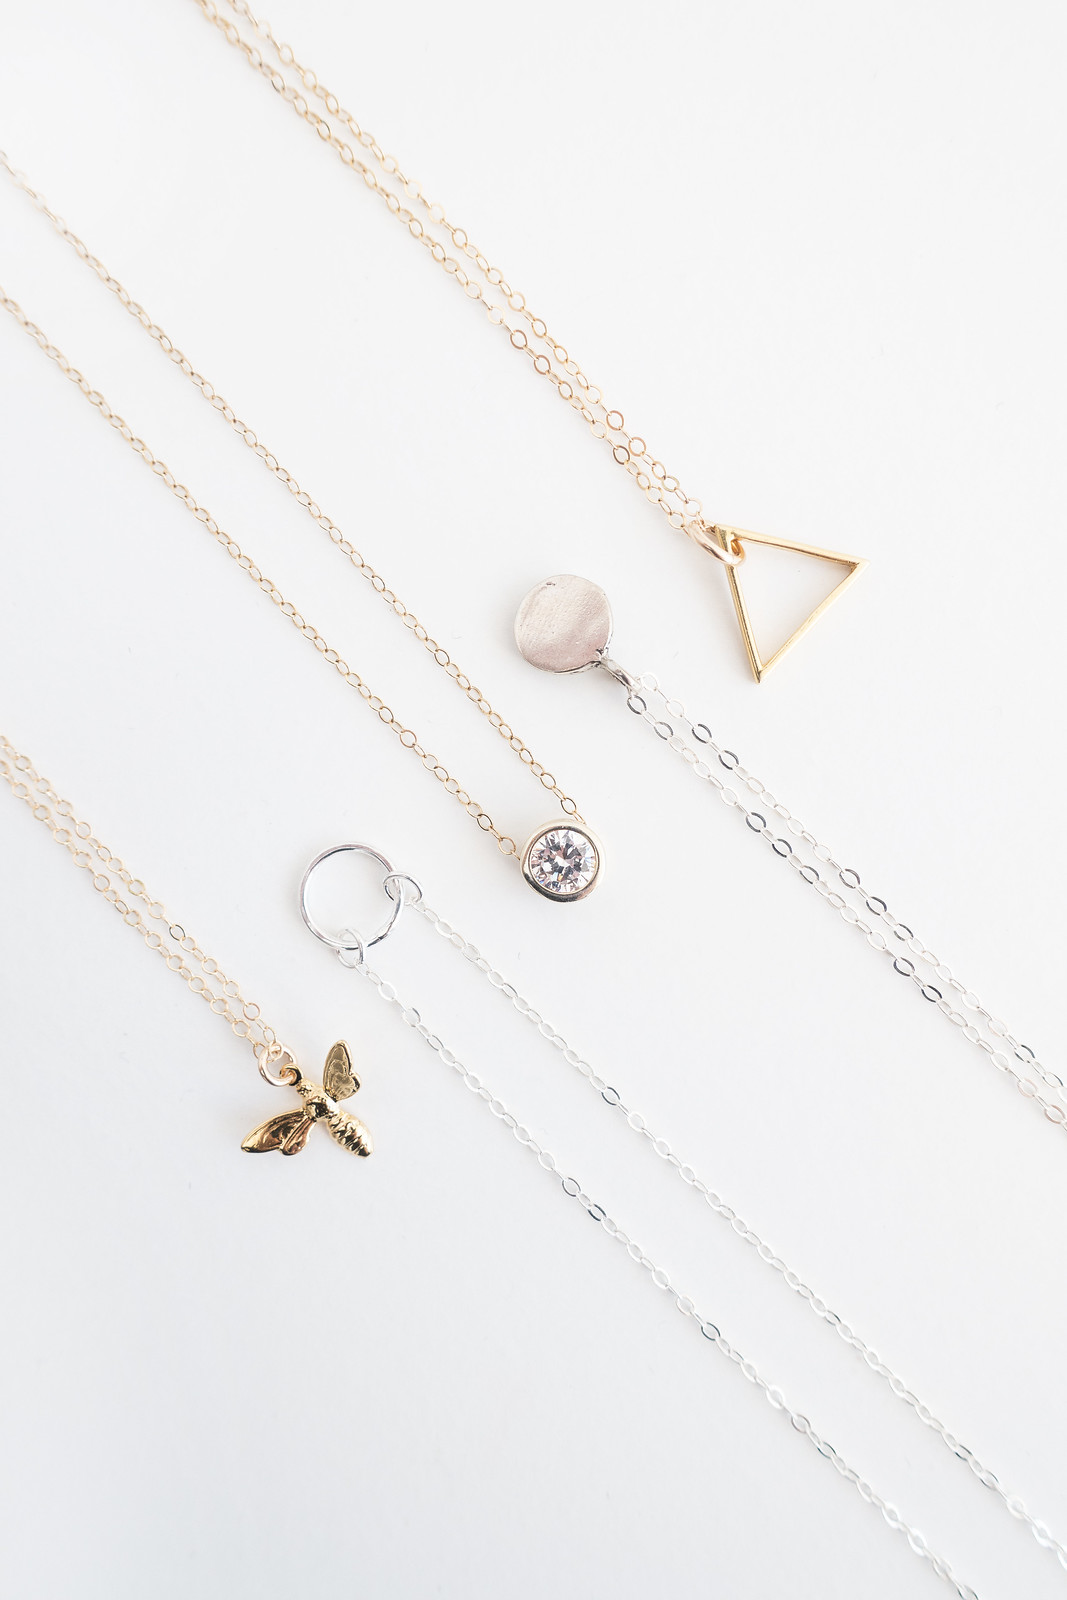 Jewellery Essentials for a Minimal Wardrobe